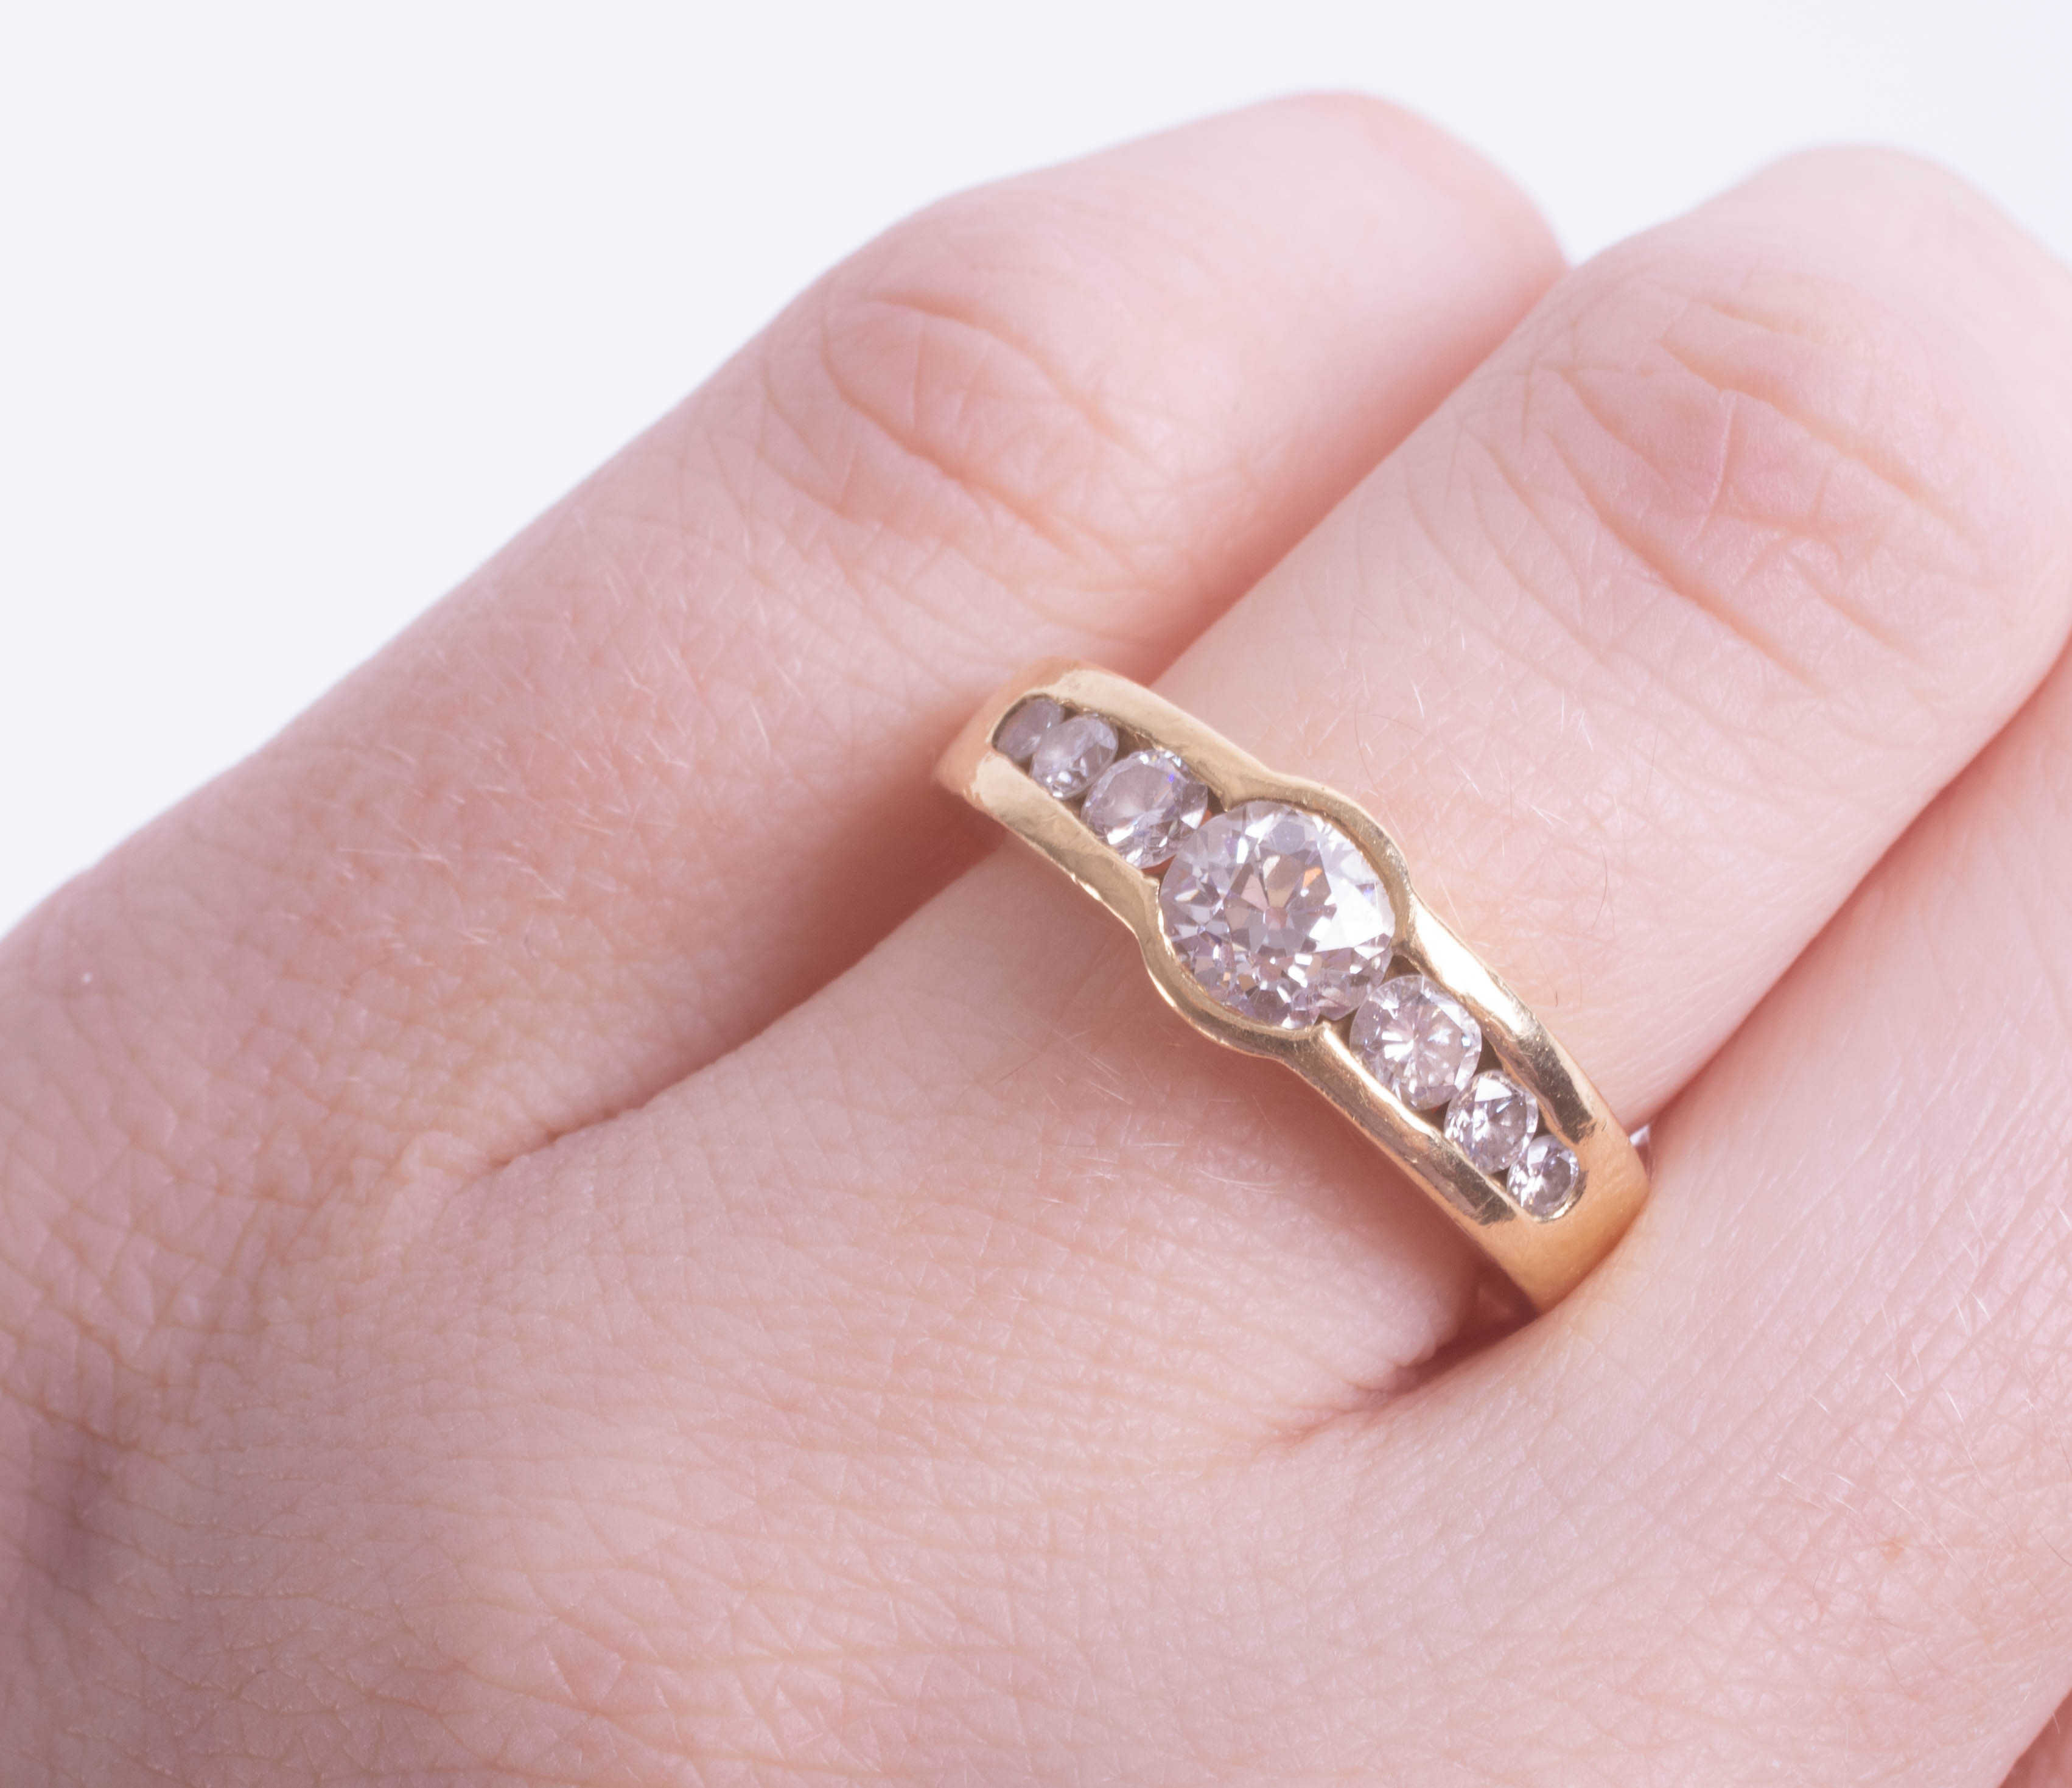 An 18ct diamond set seven stone ring, the central diamond approximately 0.80ct, with a copy of a - Image 2 of 2